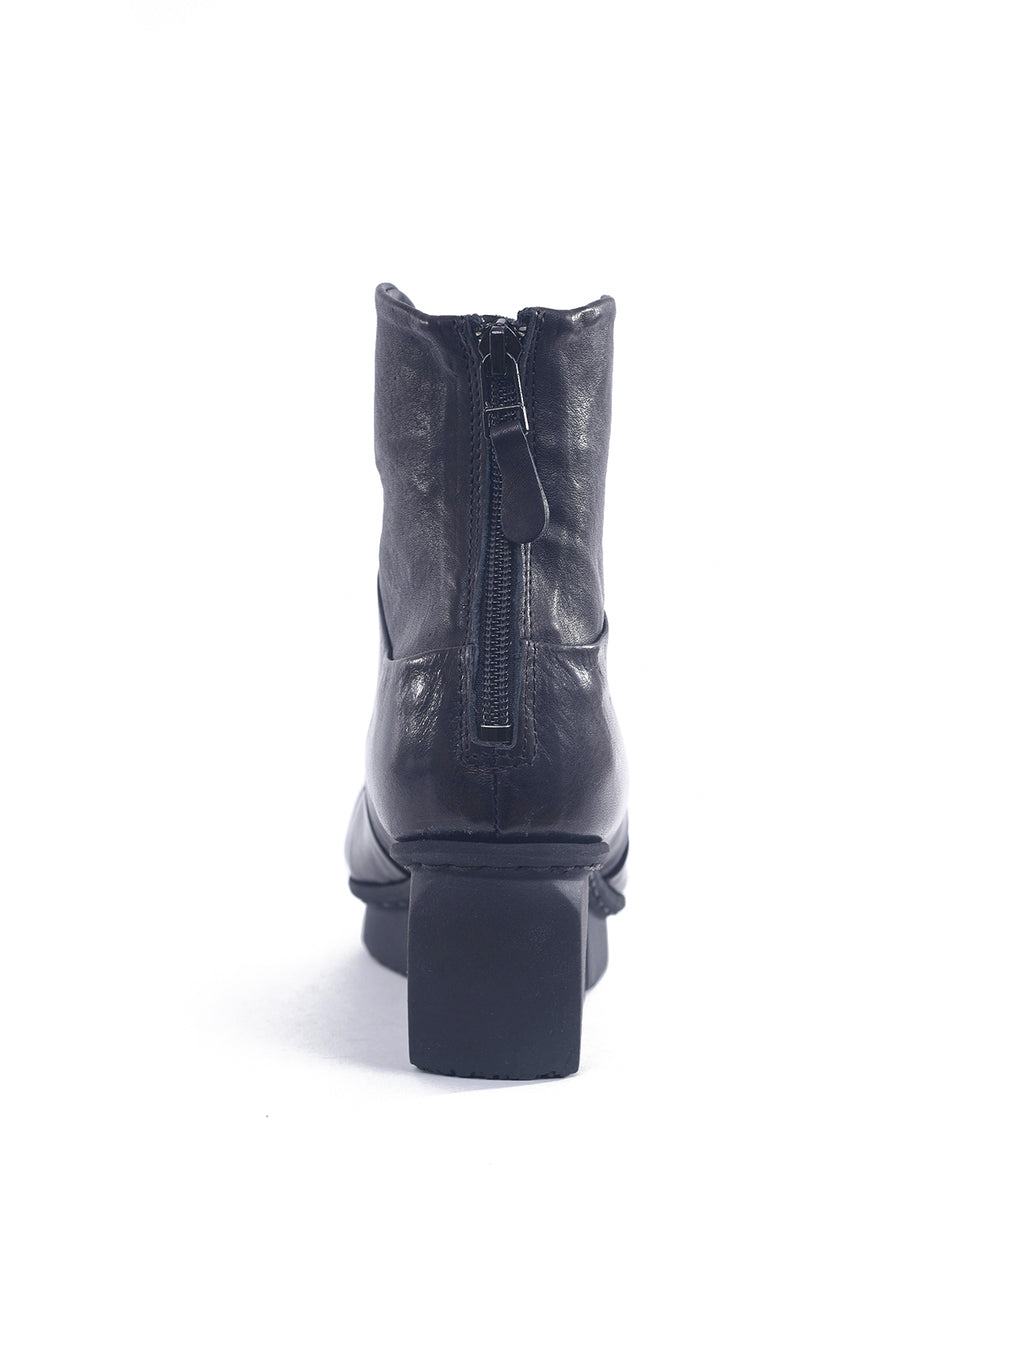 Trippen Shoes Marble Splitt Boot, Black LXP